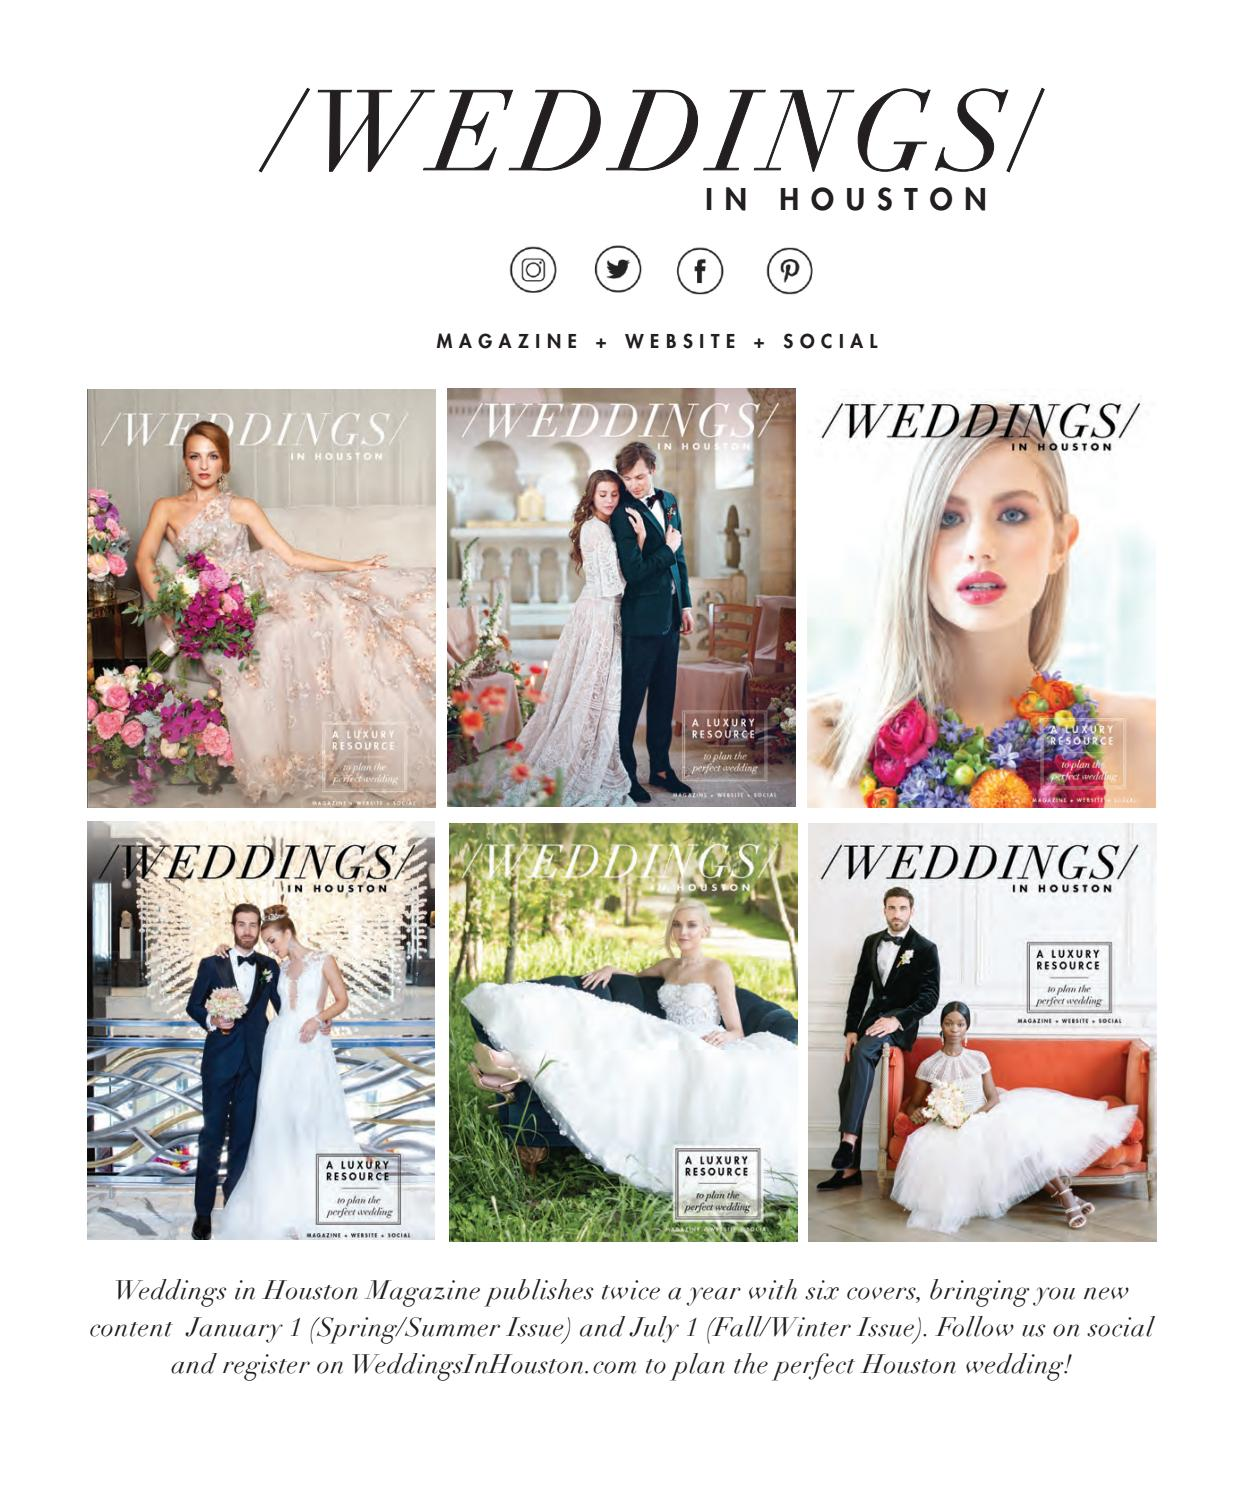 6f48b5eba Weddings in Houston Magazine - Spring-Summer 2019 Issue by Weddings in  Houston - issuu